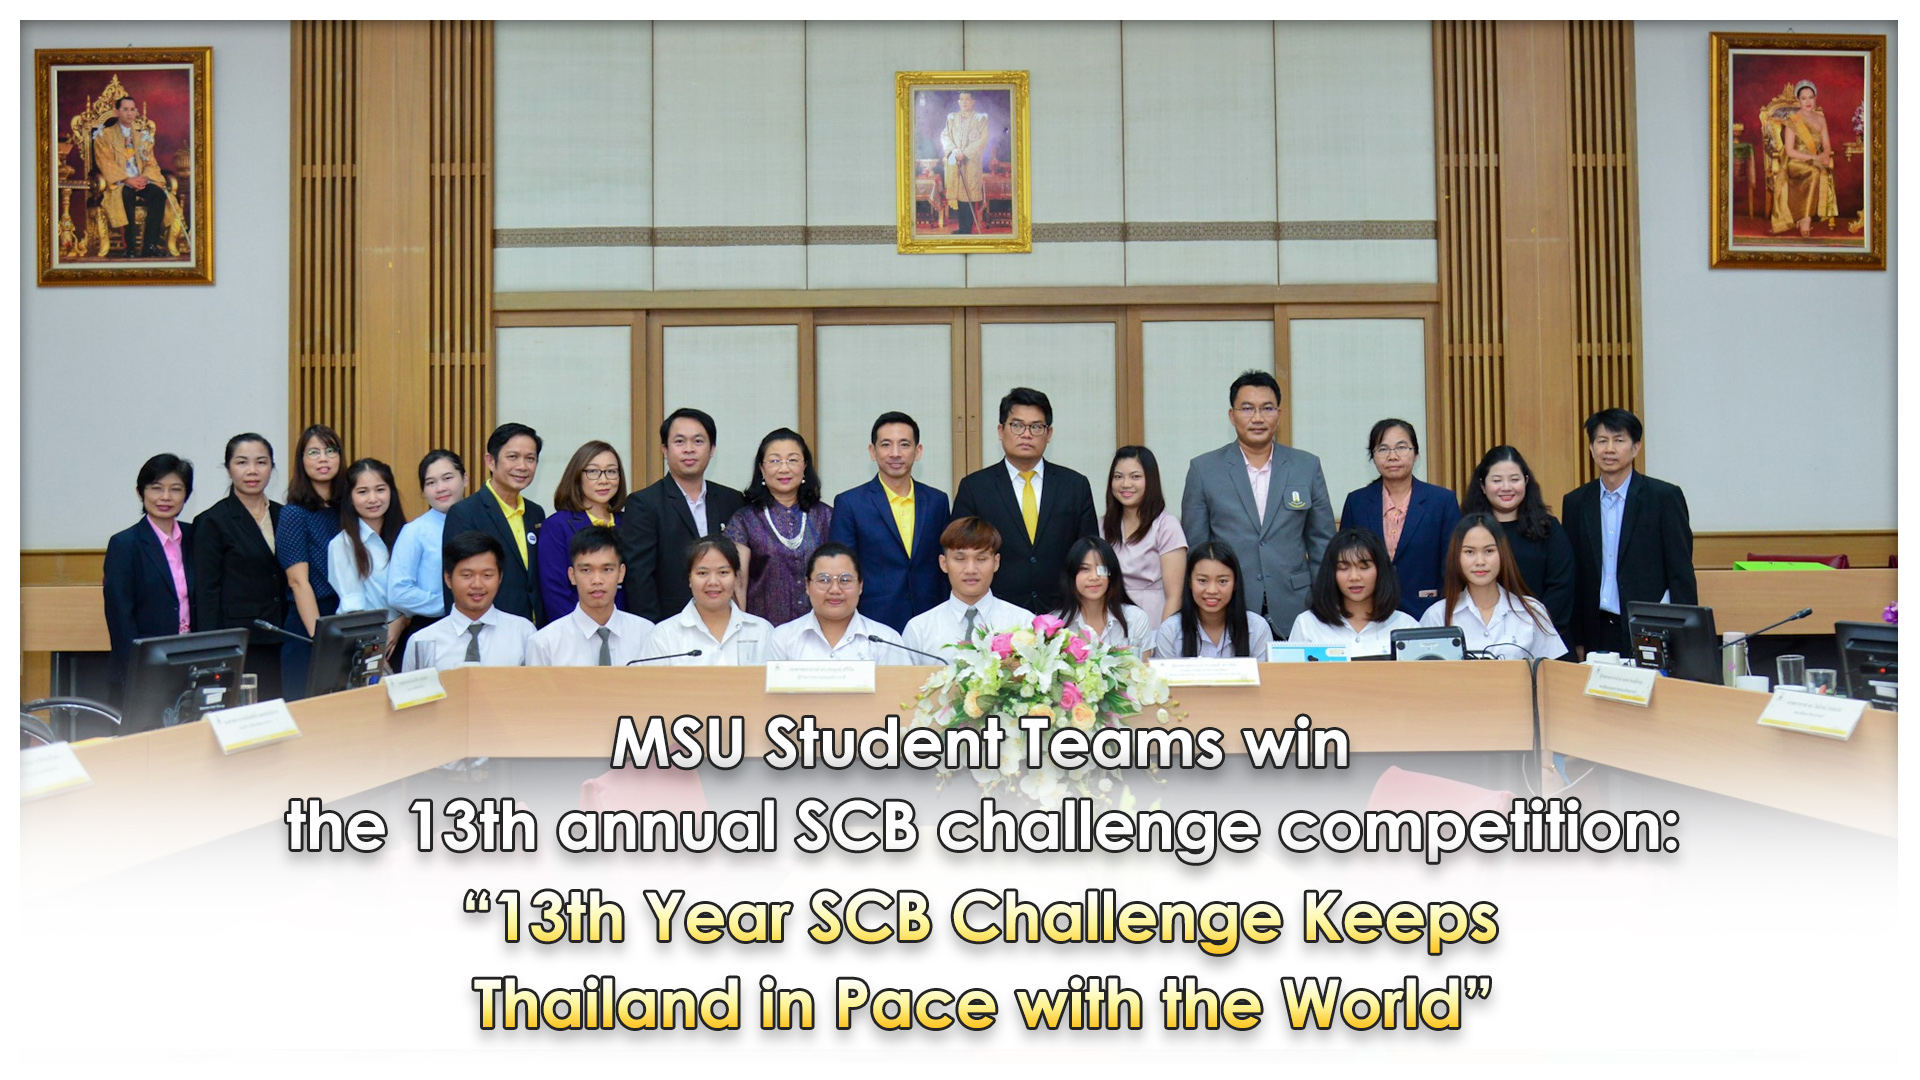 "MSU Student Teams win the 13th annual SCB challenge competition: ""13th Year SCB Challenge Keeps Thailand in Pace with the World"""